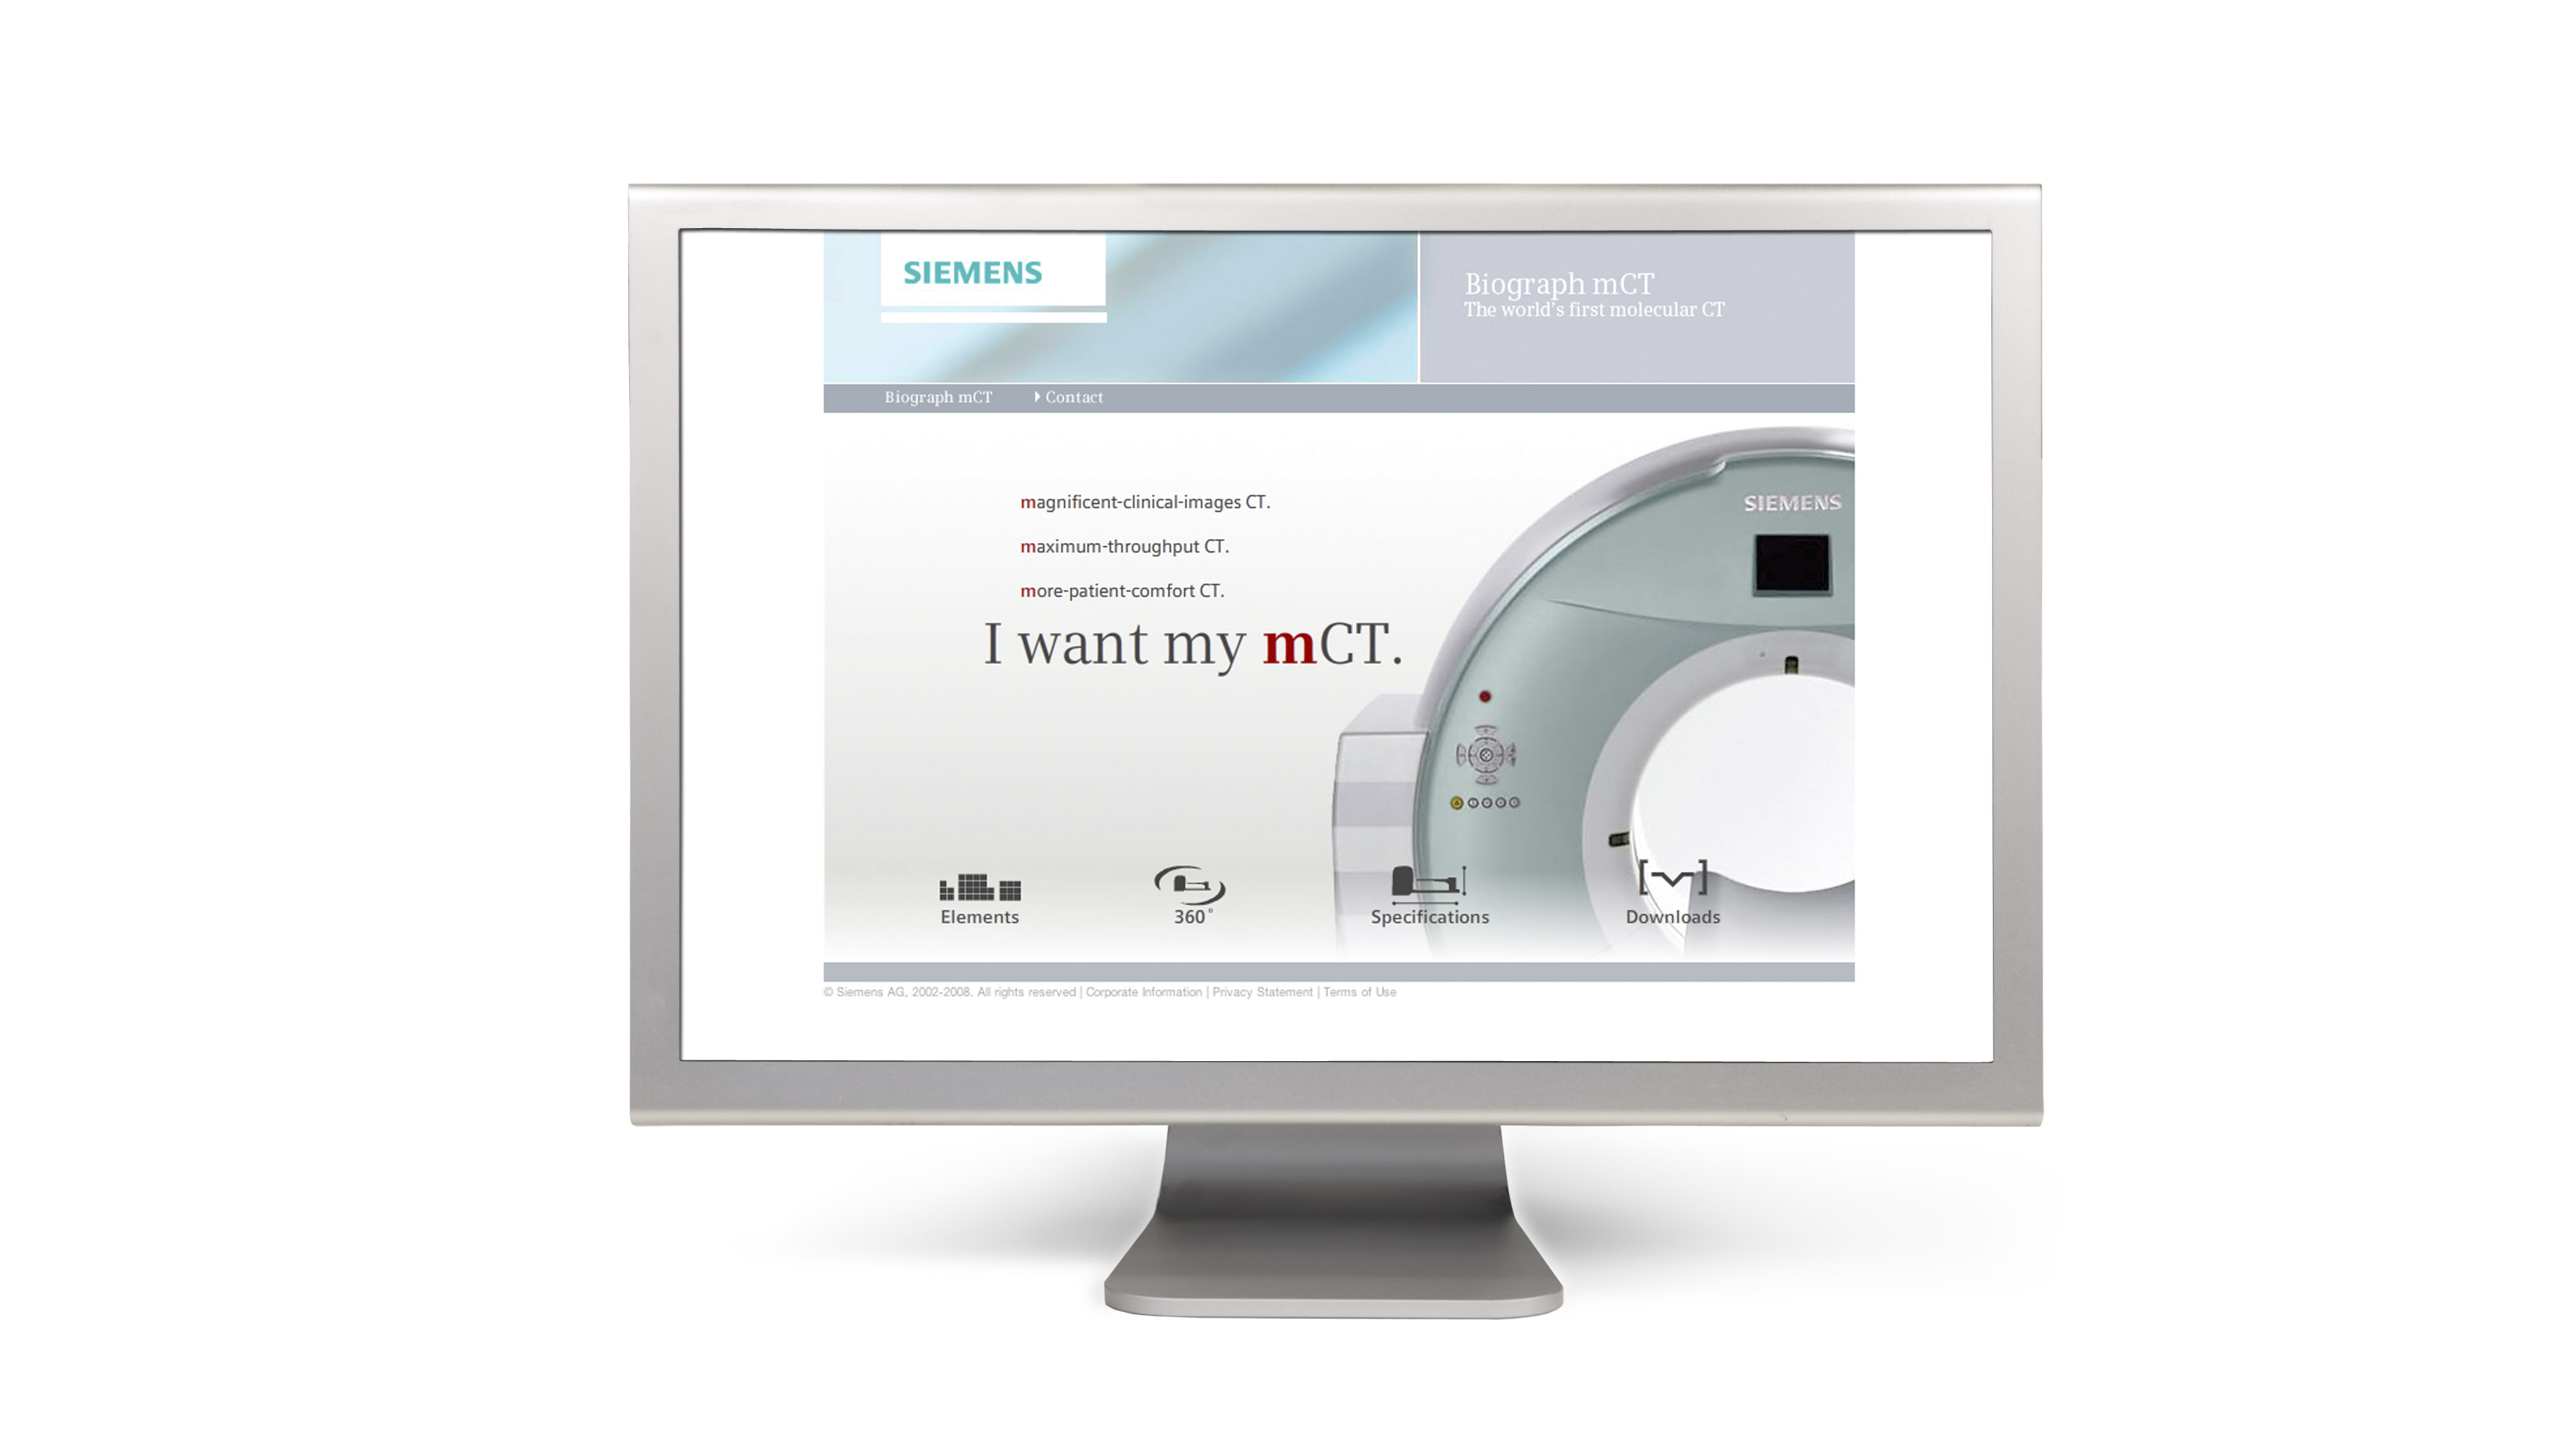 mct1 Siemens Medical Solutions